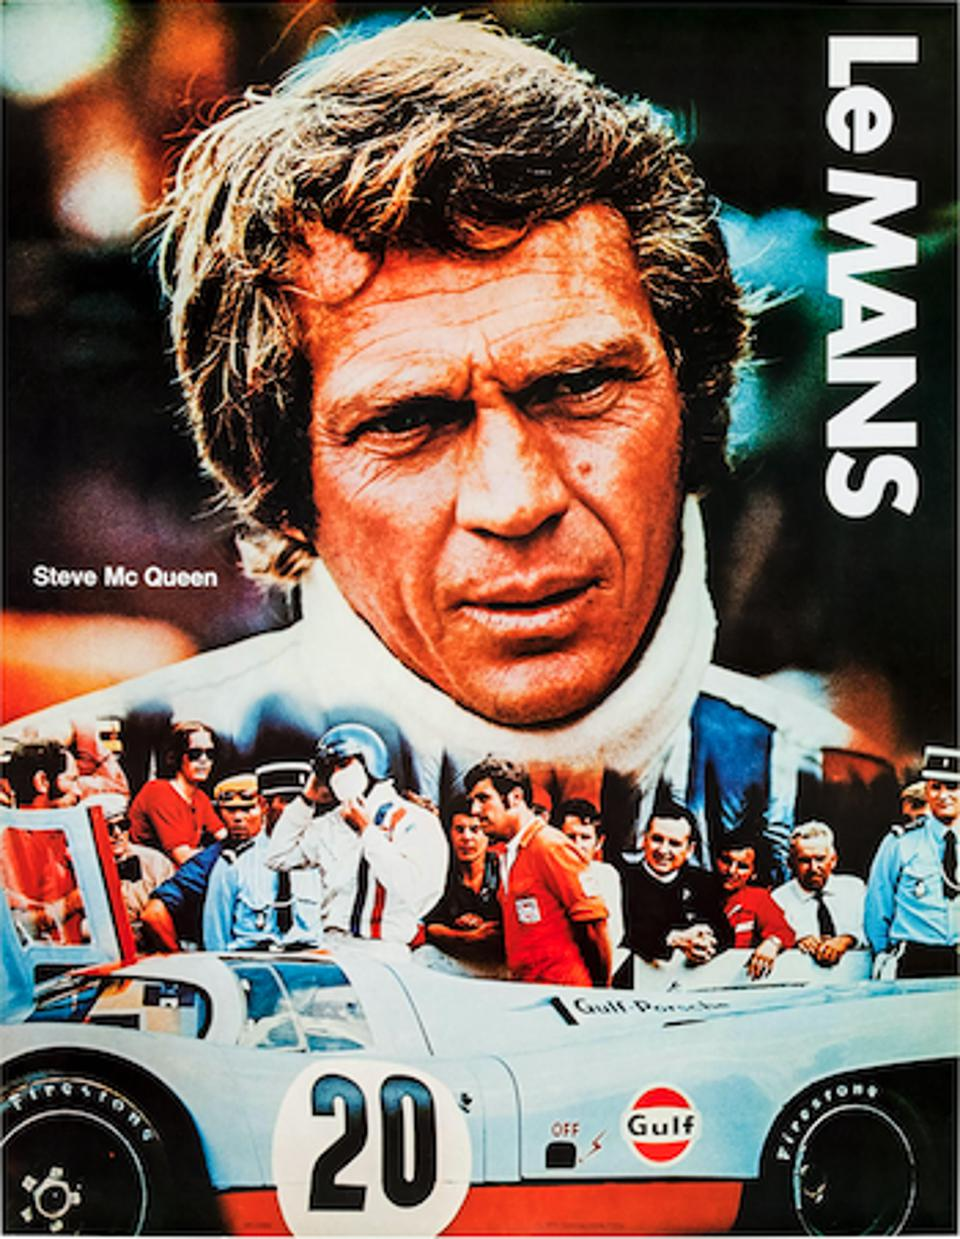 The movie poster shows Steve McQueen, with Haig Alltounian behind him.